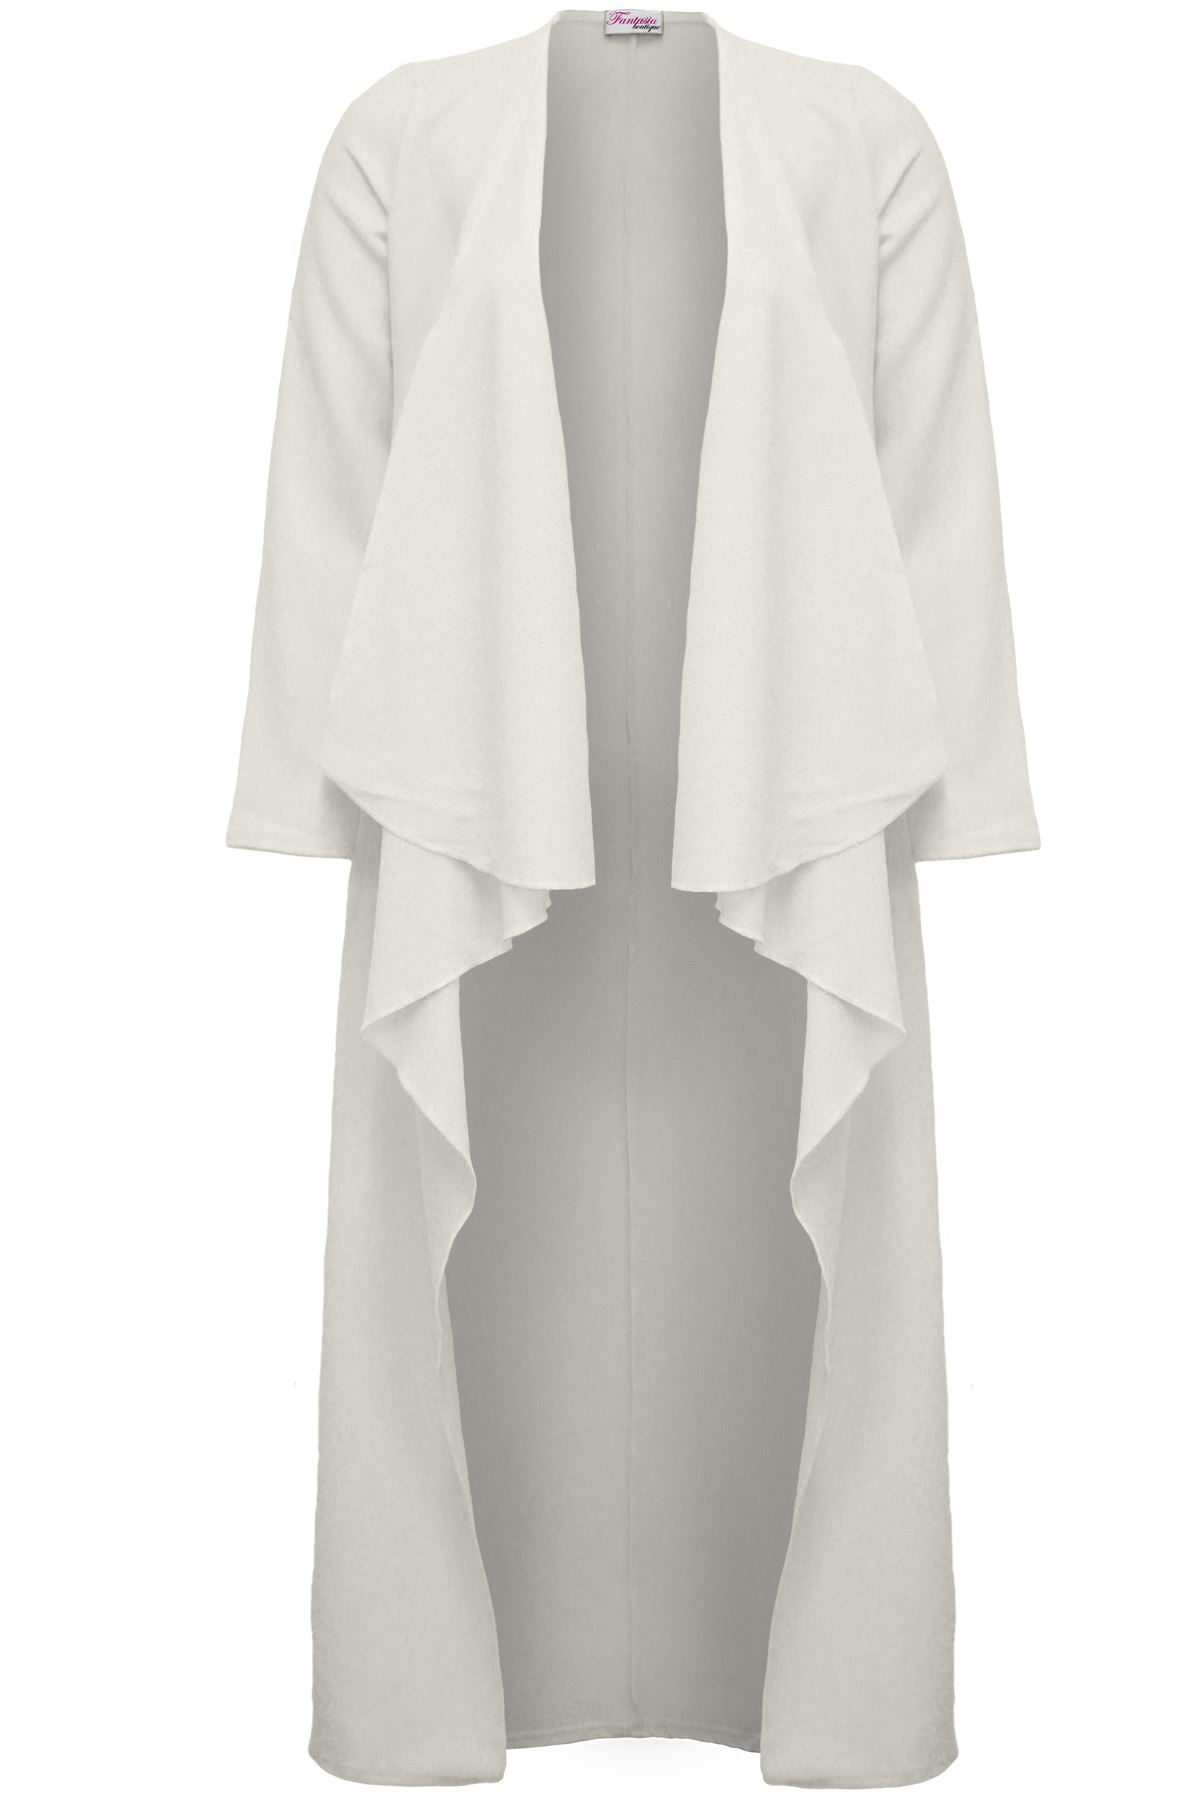 Ladies Celeb Keegan Crepe Waterfall Long Duster Jacket Lightweight ...